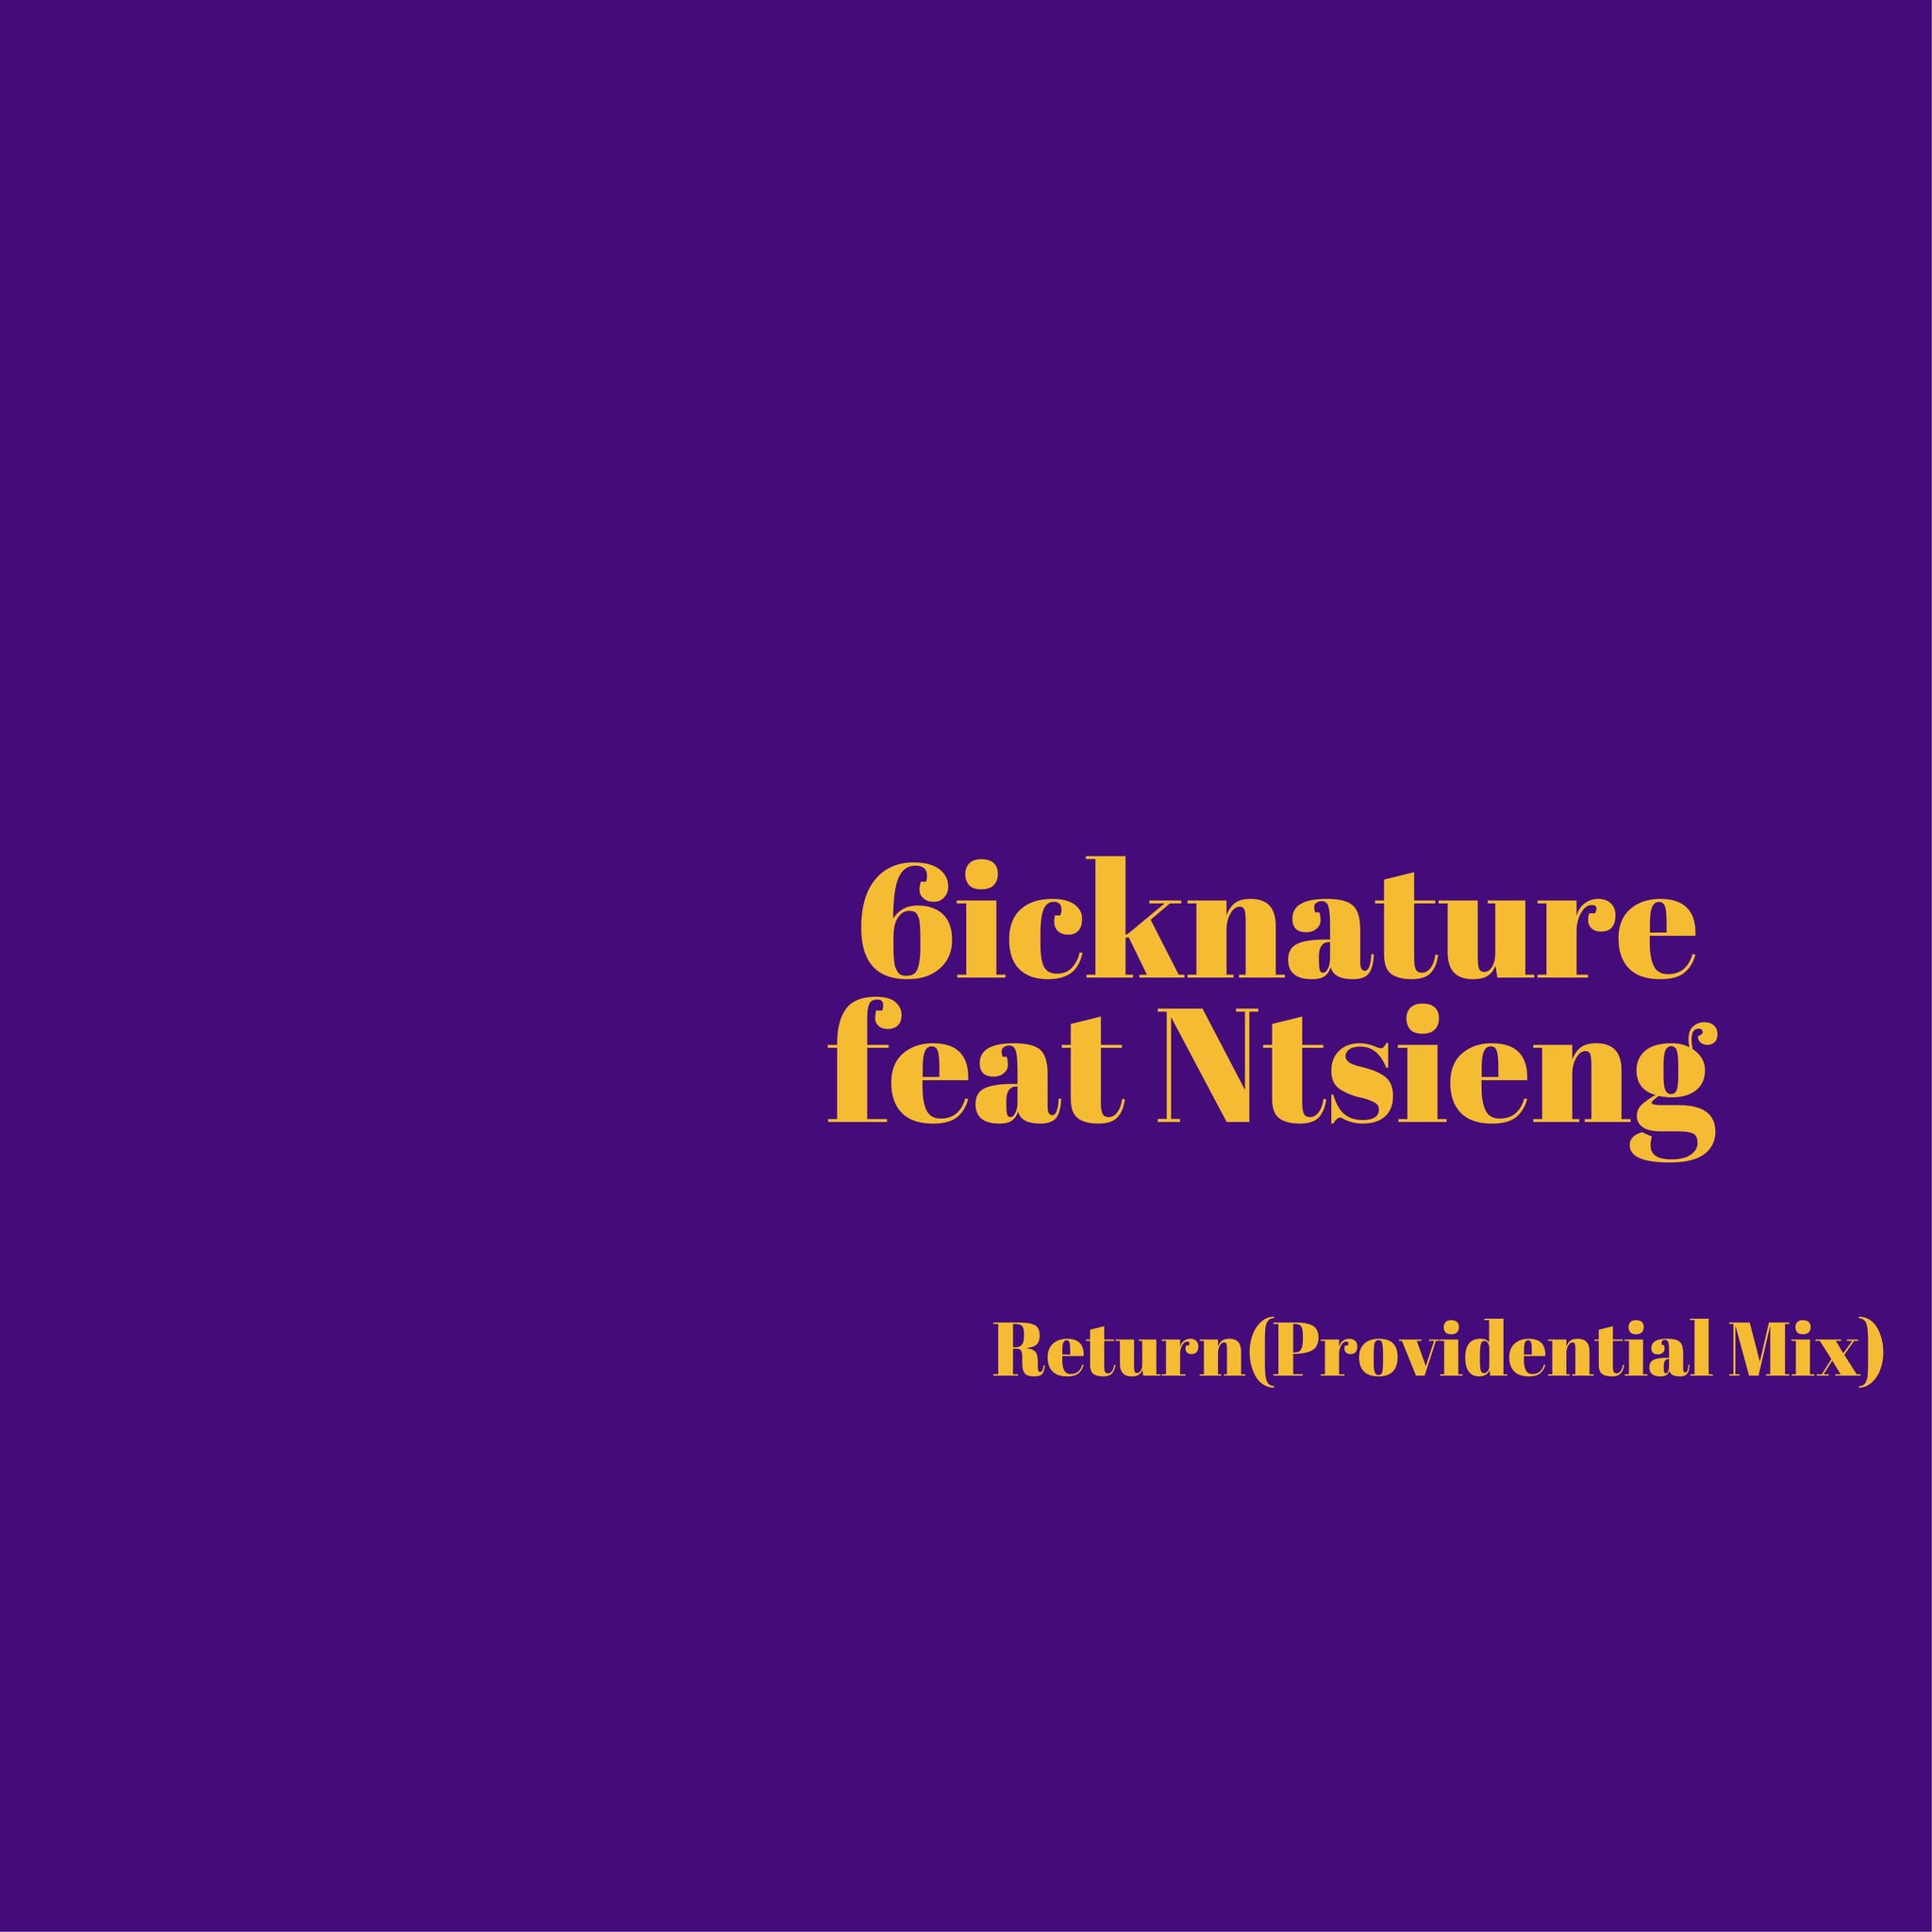 Artist: 6icknature Feat Ntsieng  Song: Return (Providential Mix) Label: Behind Excellence Publisher: YME Music code:W6B-18-00006